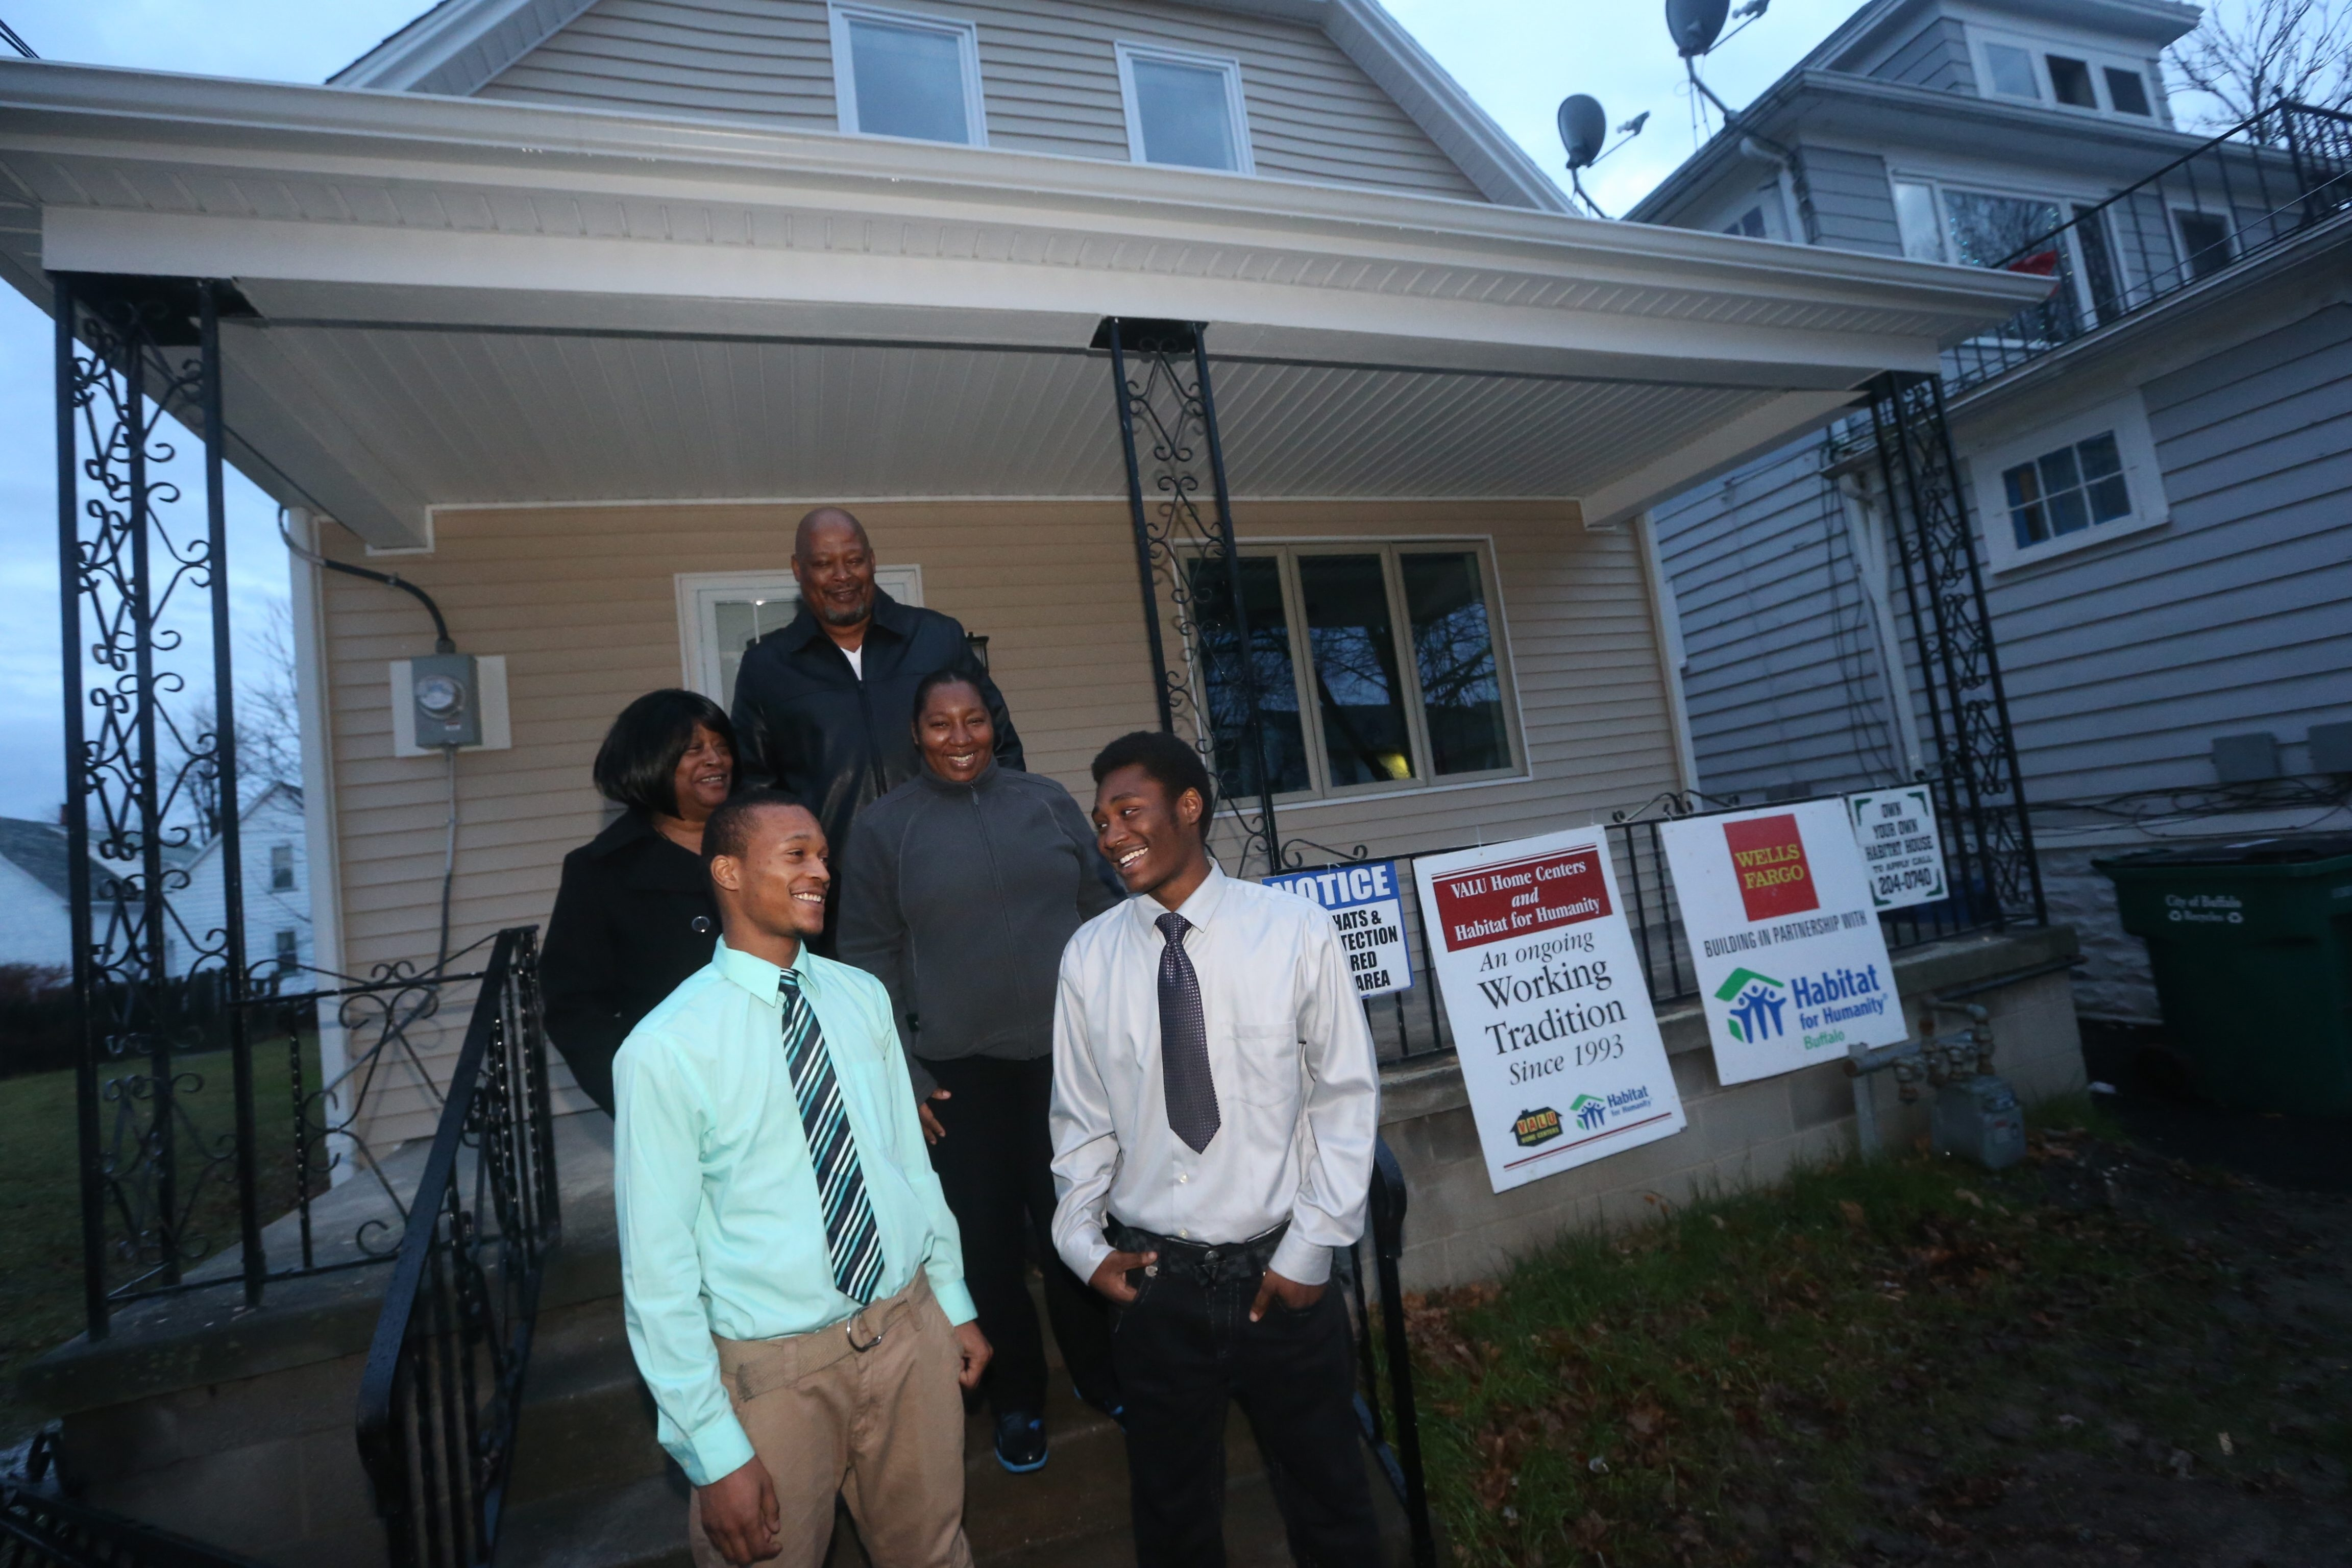 Performing Arts students Corey Hill, left, with his mother, Velma Benson, and Nicholas Toomes, with his parents, Nathanial and Thelma Askew, beam with pride at Habitat for Humanity house they helped build. (John Hickey/Buffalo News)